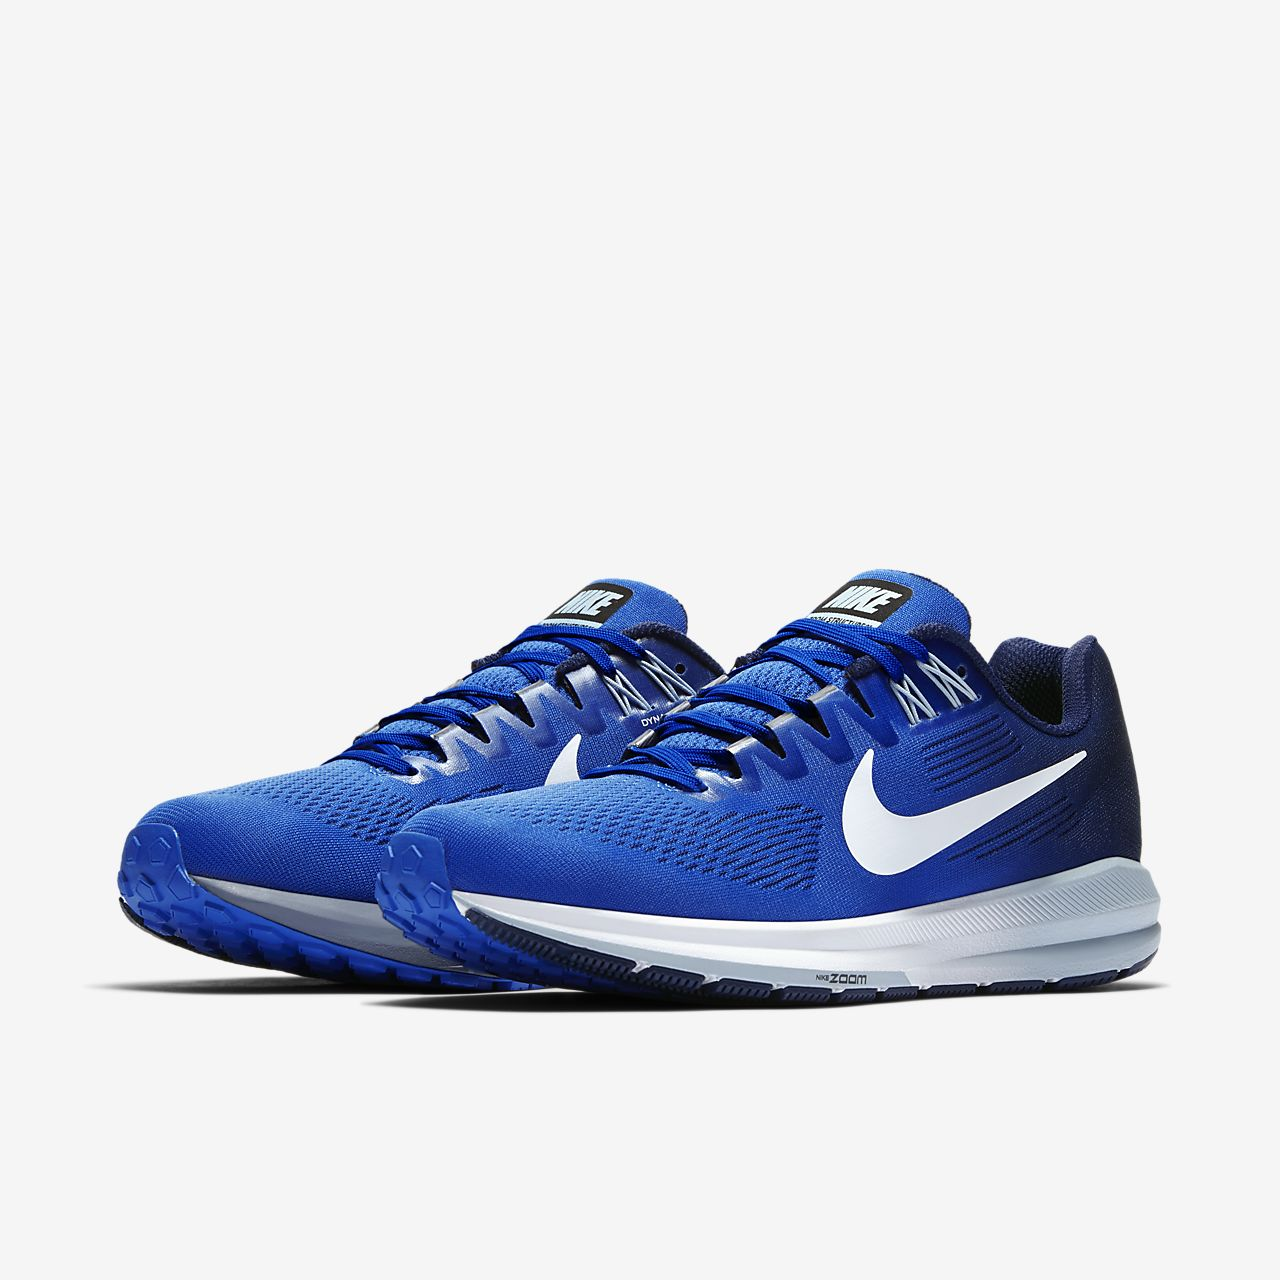 Nike Nike Nike Air Zoom Structure 21 Herren-Laufschuh    | Outlet Store Online  9031d4